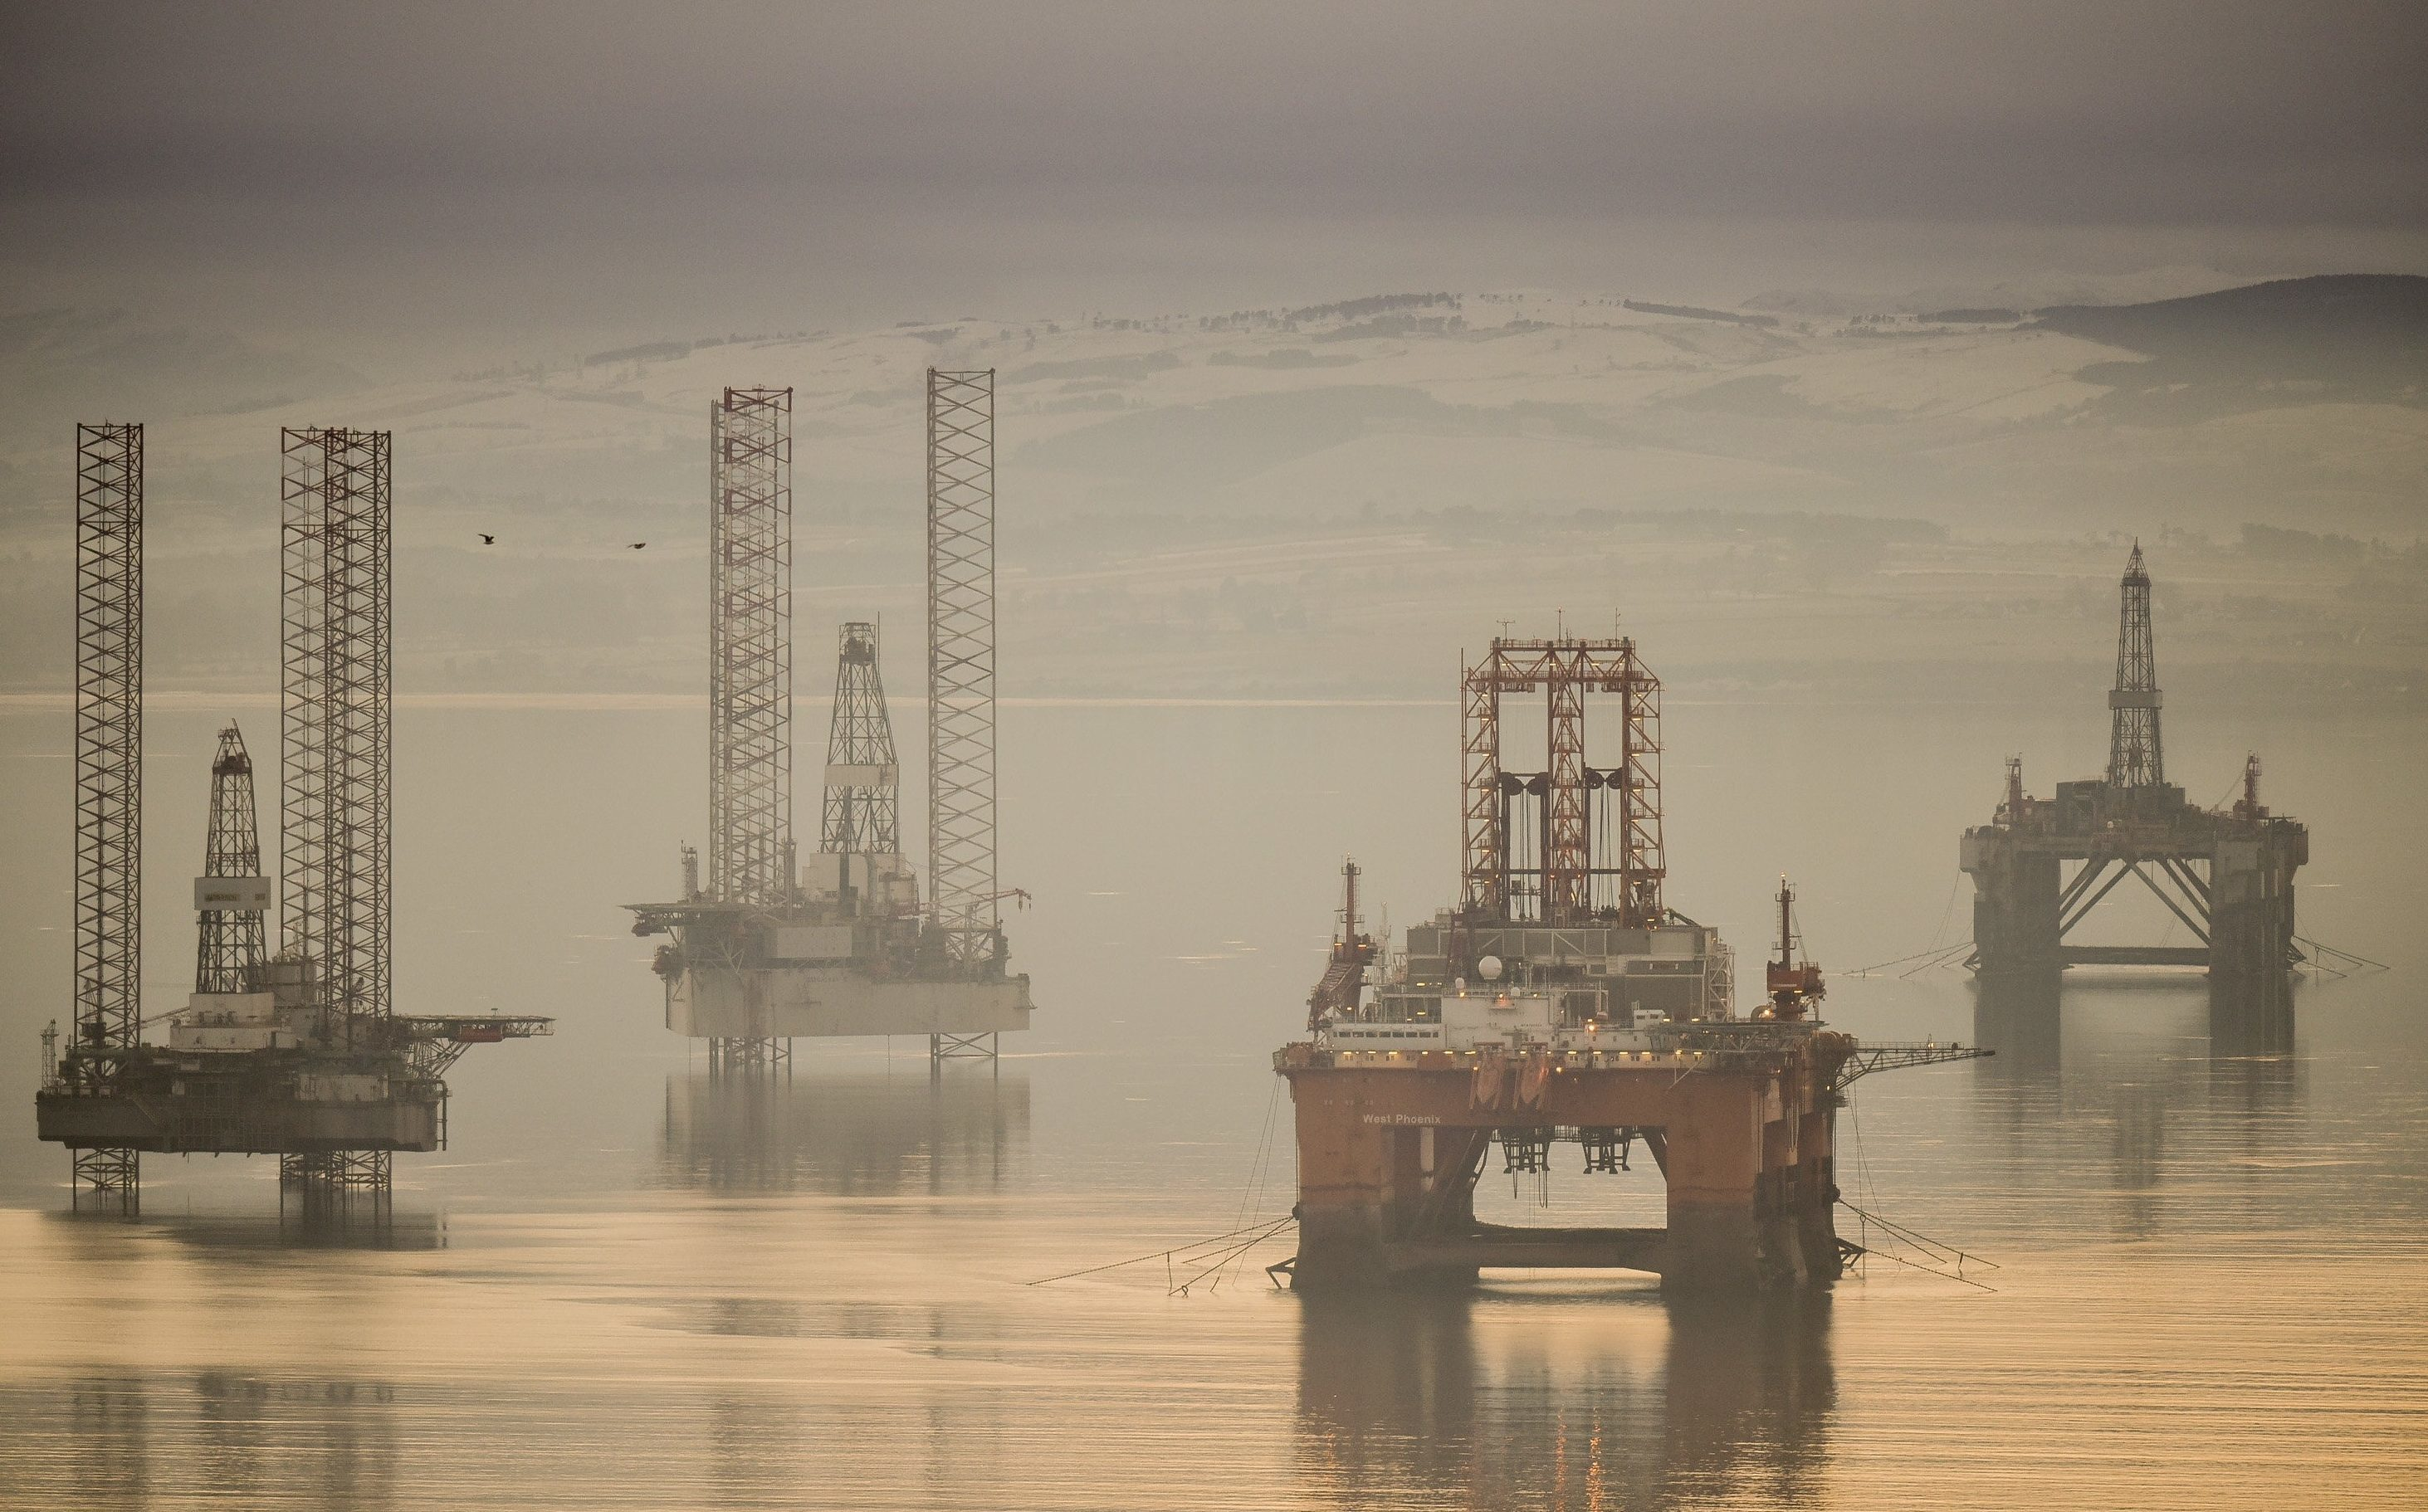 The oil rig graveyard in the Cromarty Firth near Invergordon, Highland.